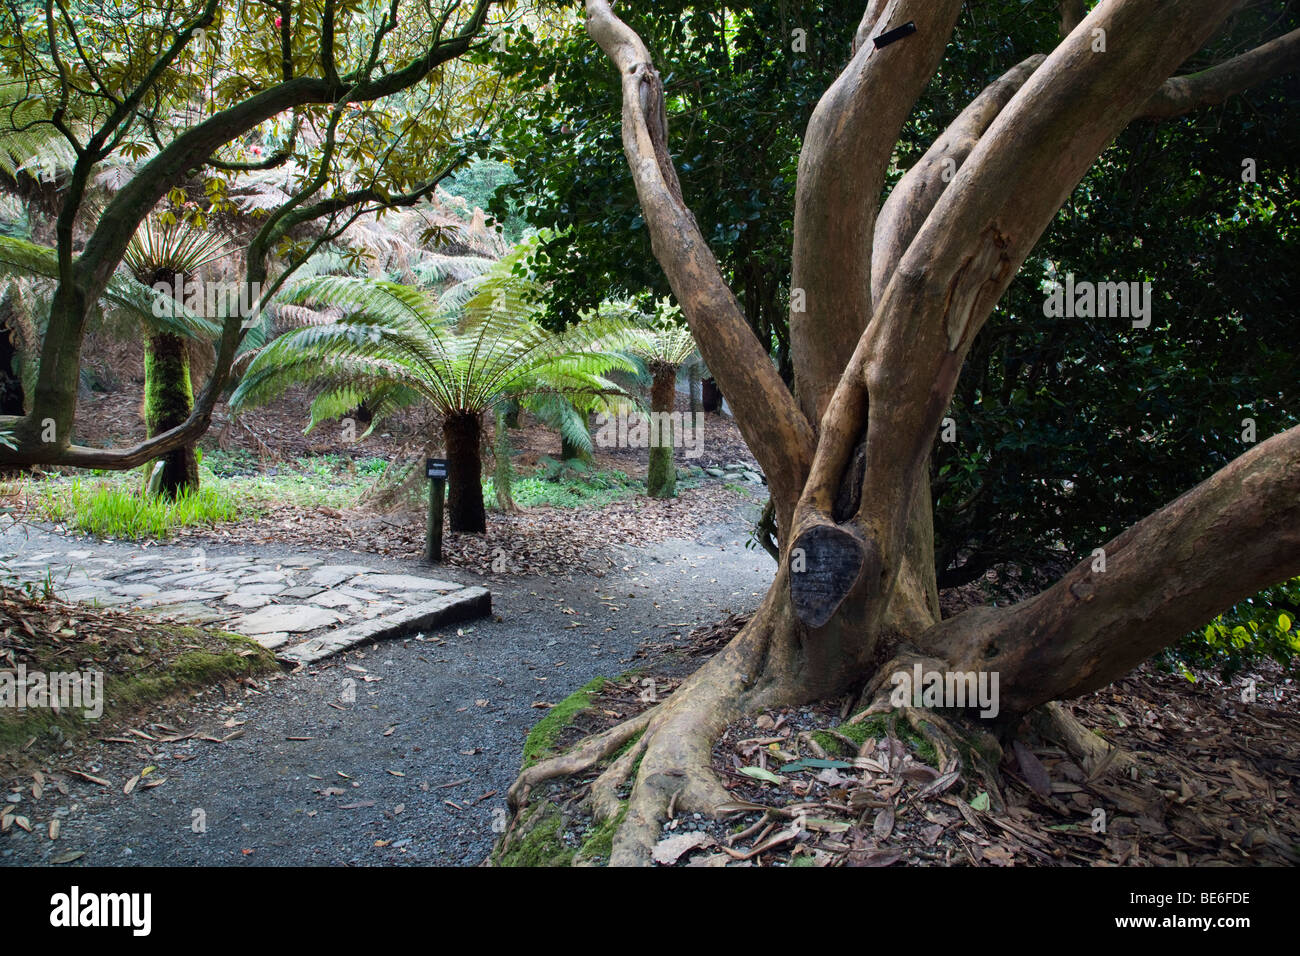 trebah garden; cornwall; tree ferns; - Stock Image